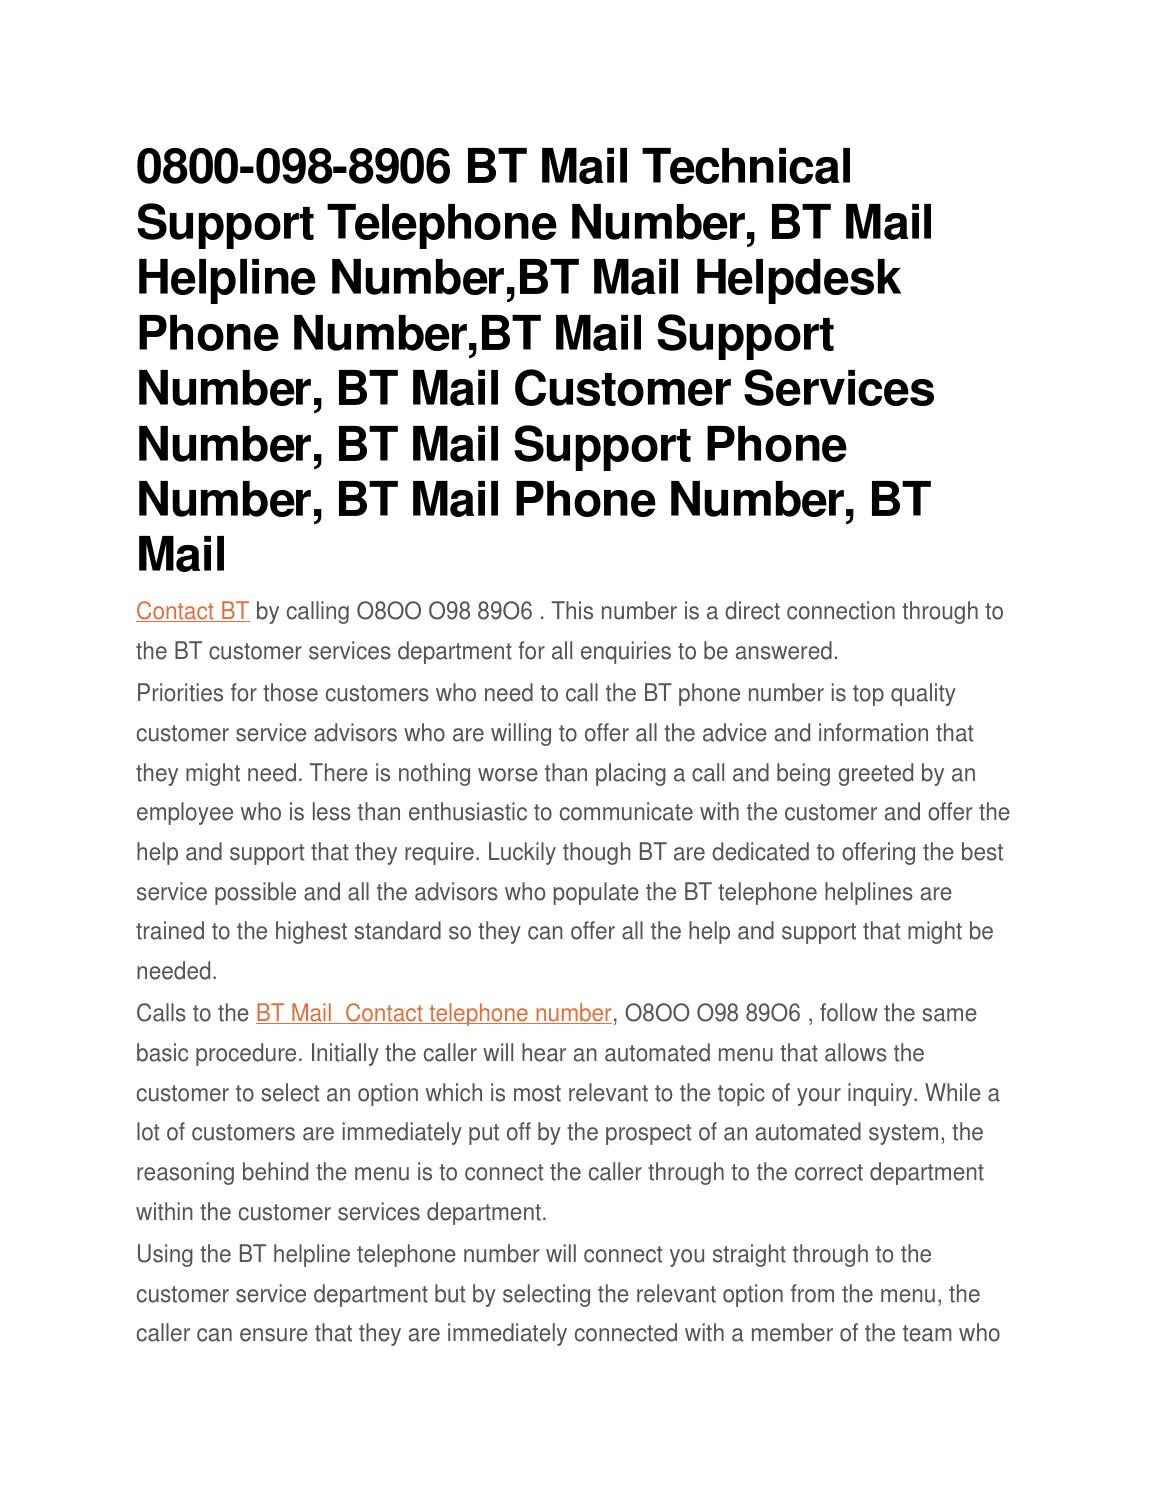 0800 098 8906 Bt Mail Technical Helpline Phone Number Support By O8oo O98 89o6 Issuu